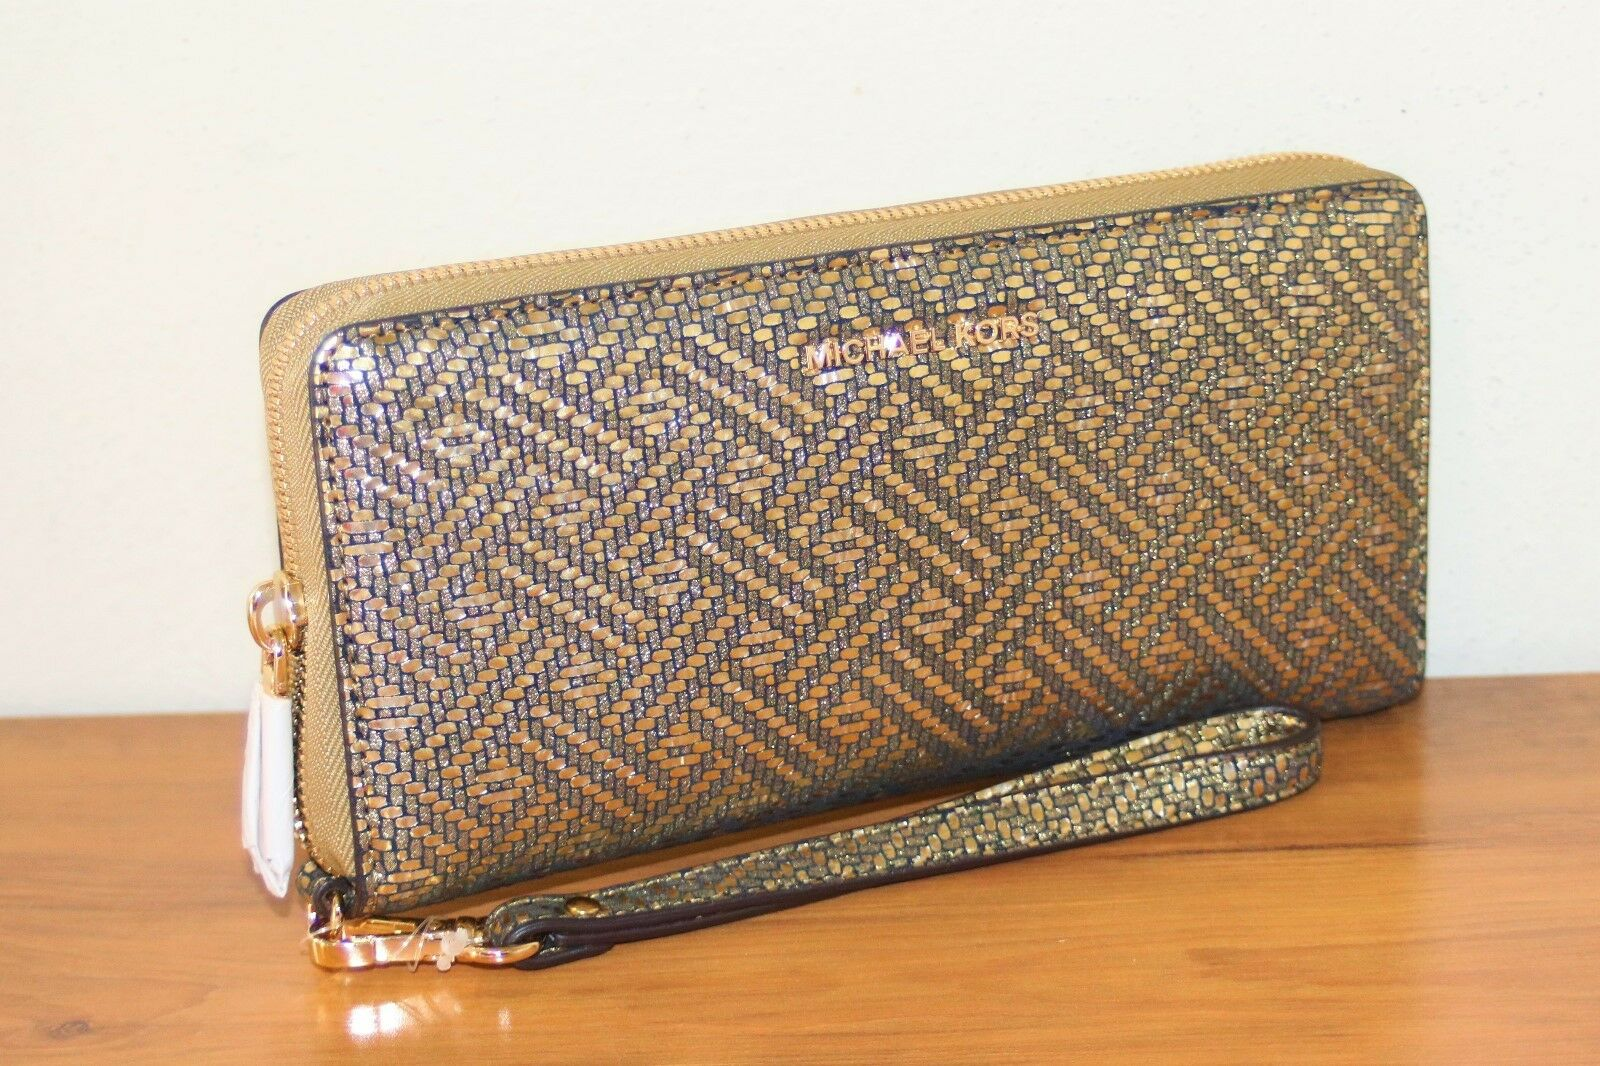 94d720eecd9174 Michael Kors Metallic Leather CONTINENTAL Purse Retail Cyber Monday for  sale online | eBay